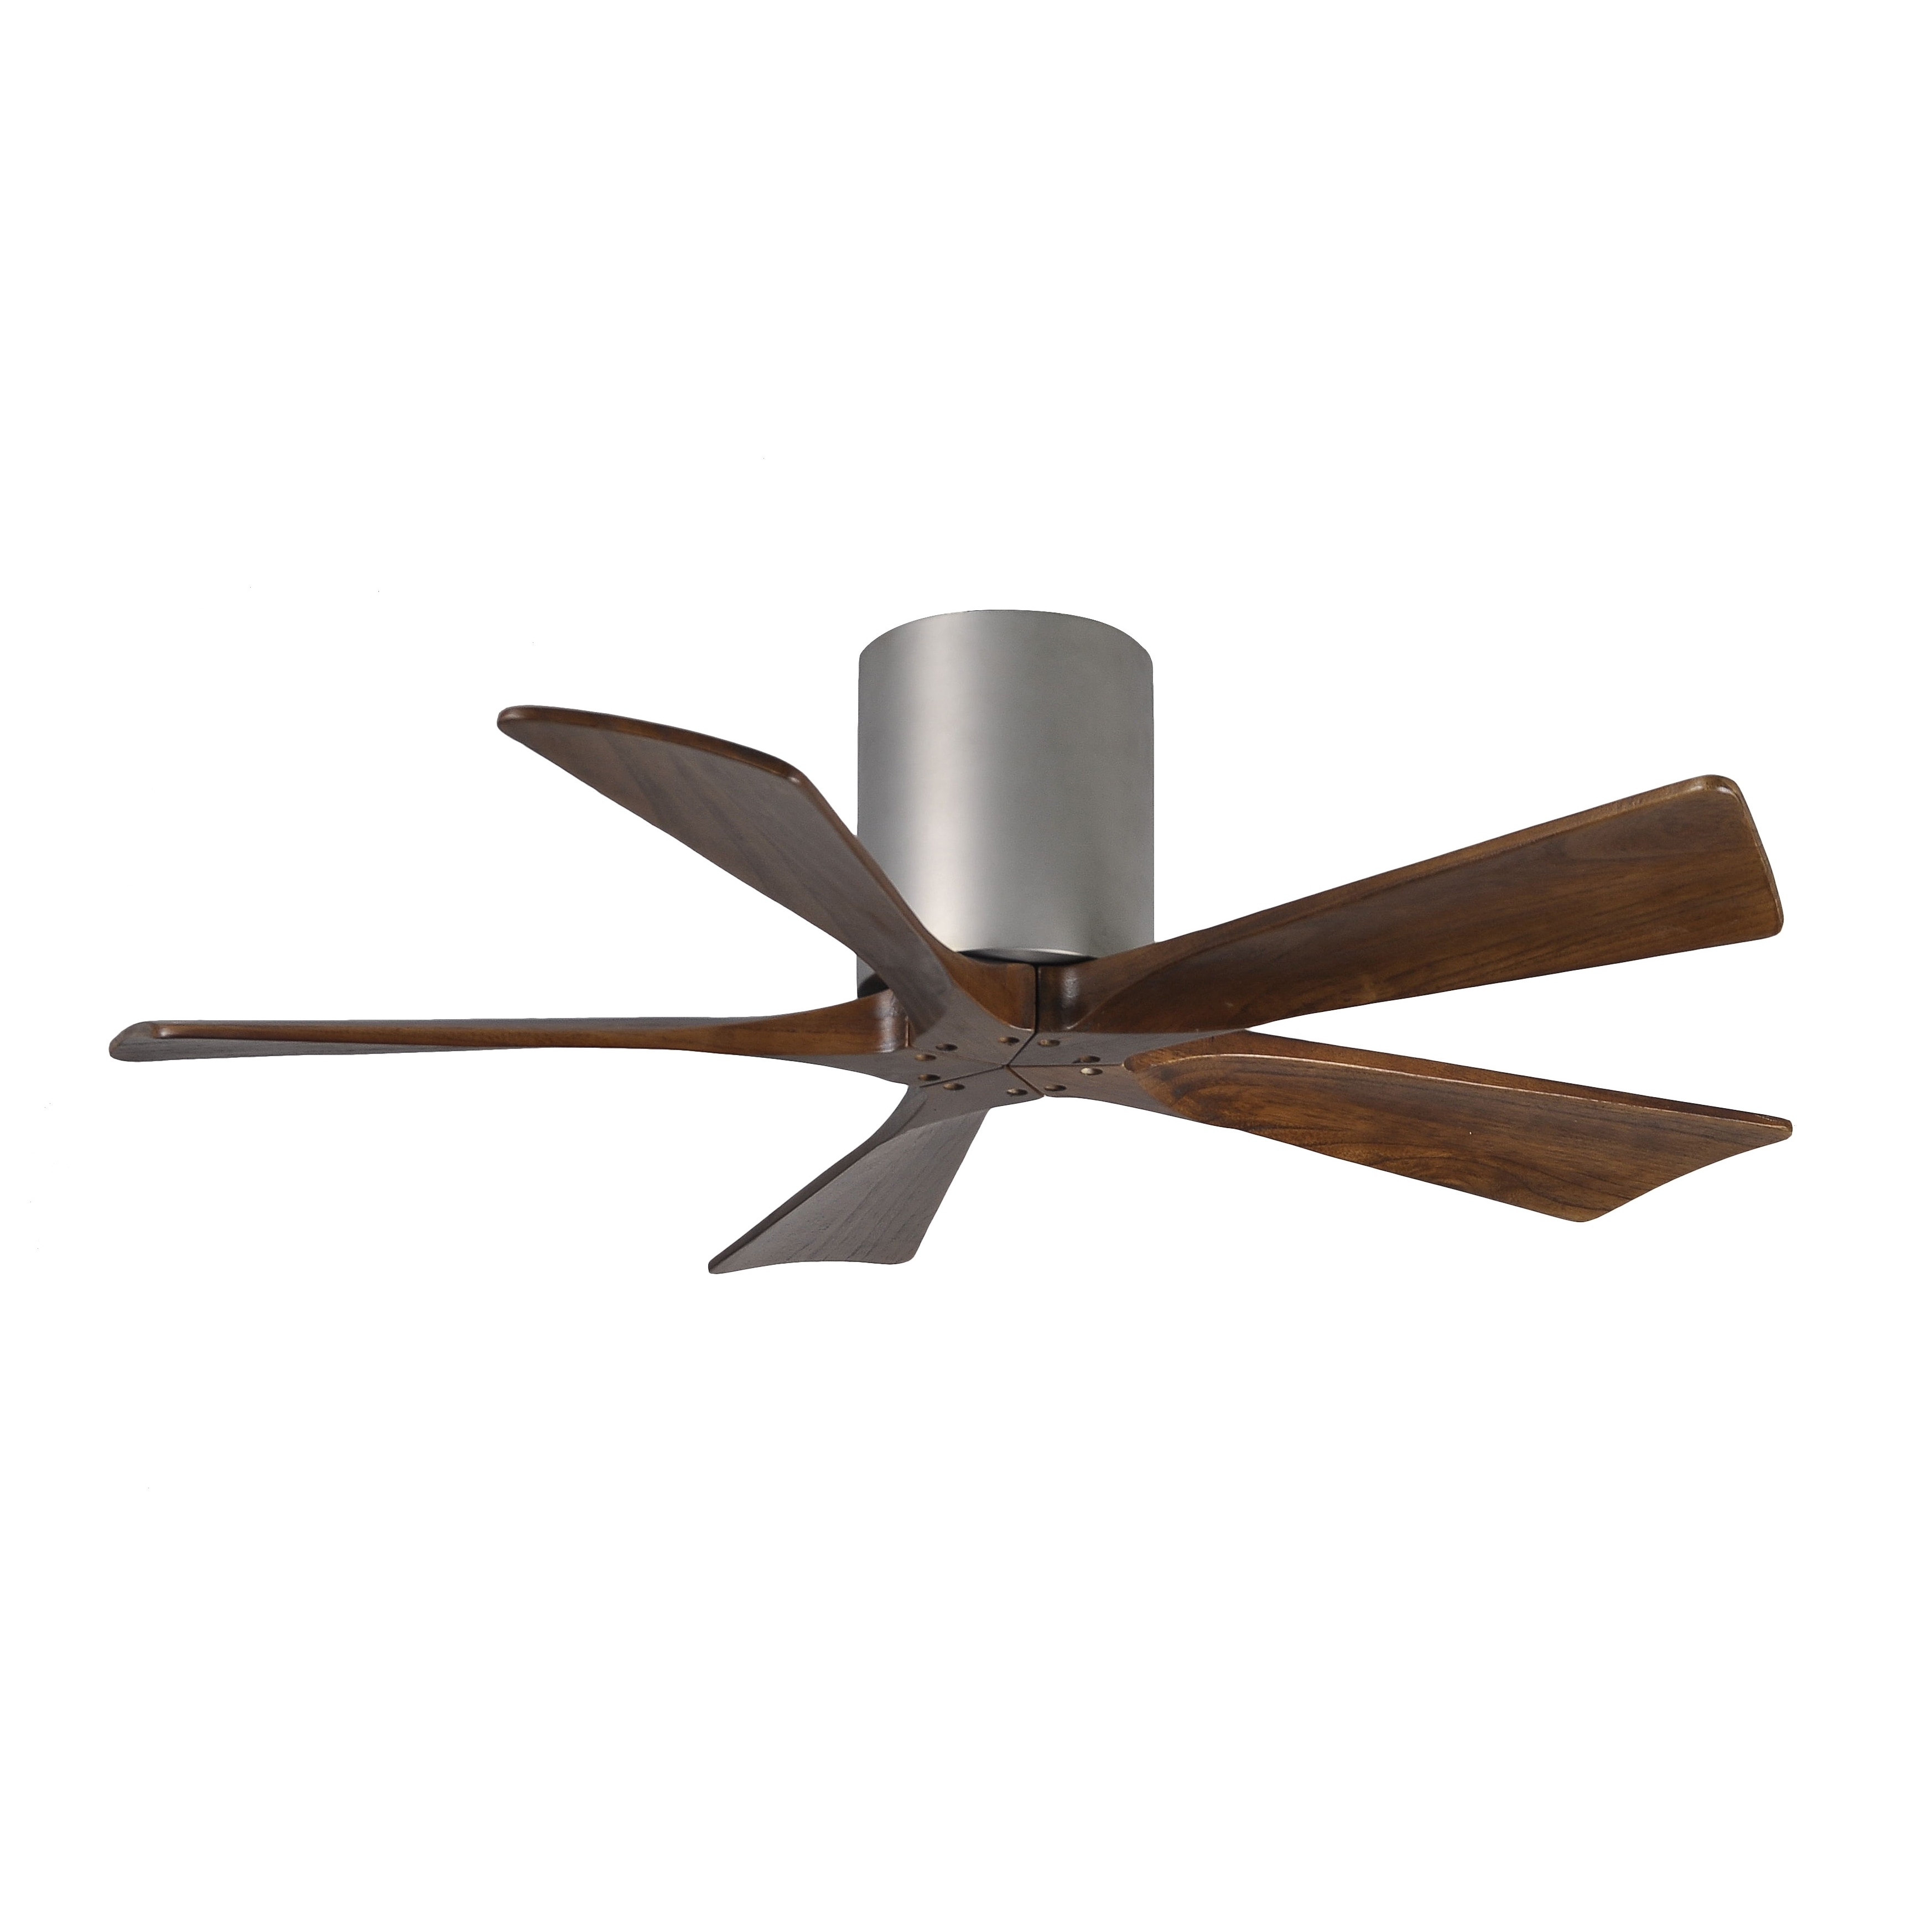 light without of with lights remote paddle blade sizing unique full ceiling modern also for and fans wood rustic wooden designer size decor fan stylish